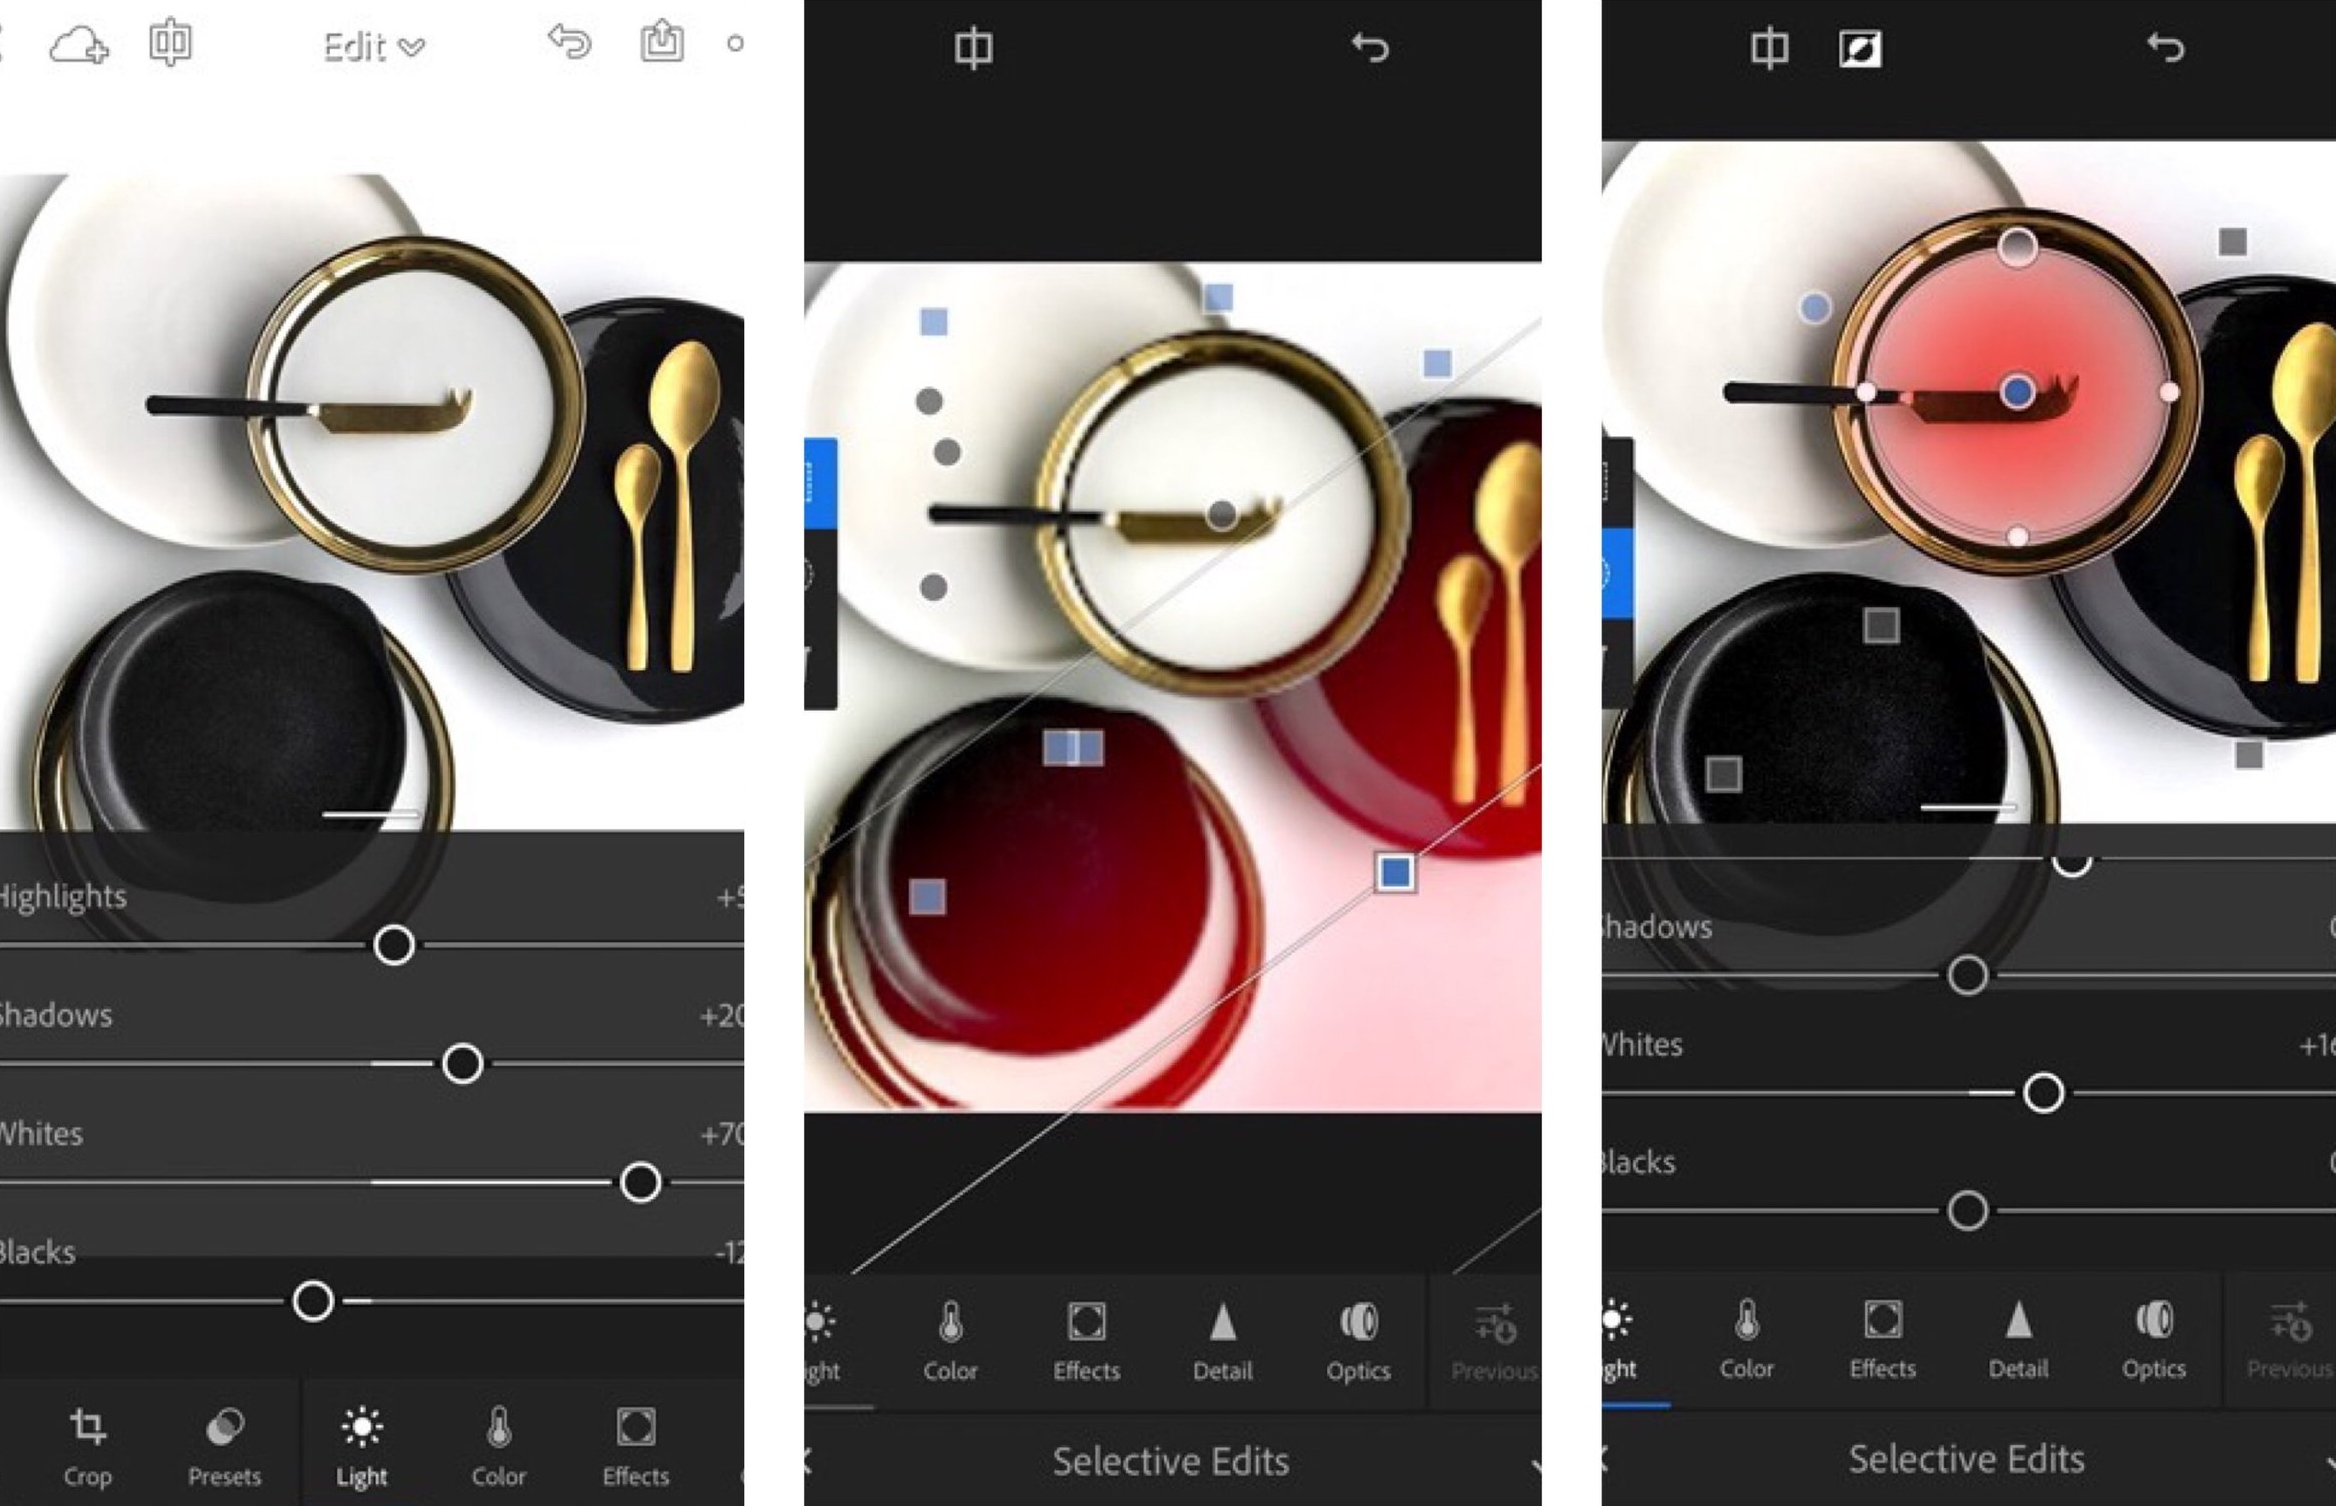 Pictured: Using the gradient and radial selective editing tools in Lightroom for iPhone